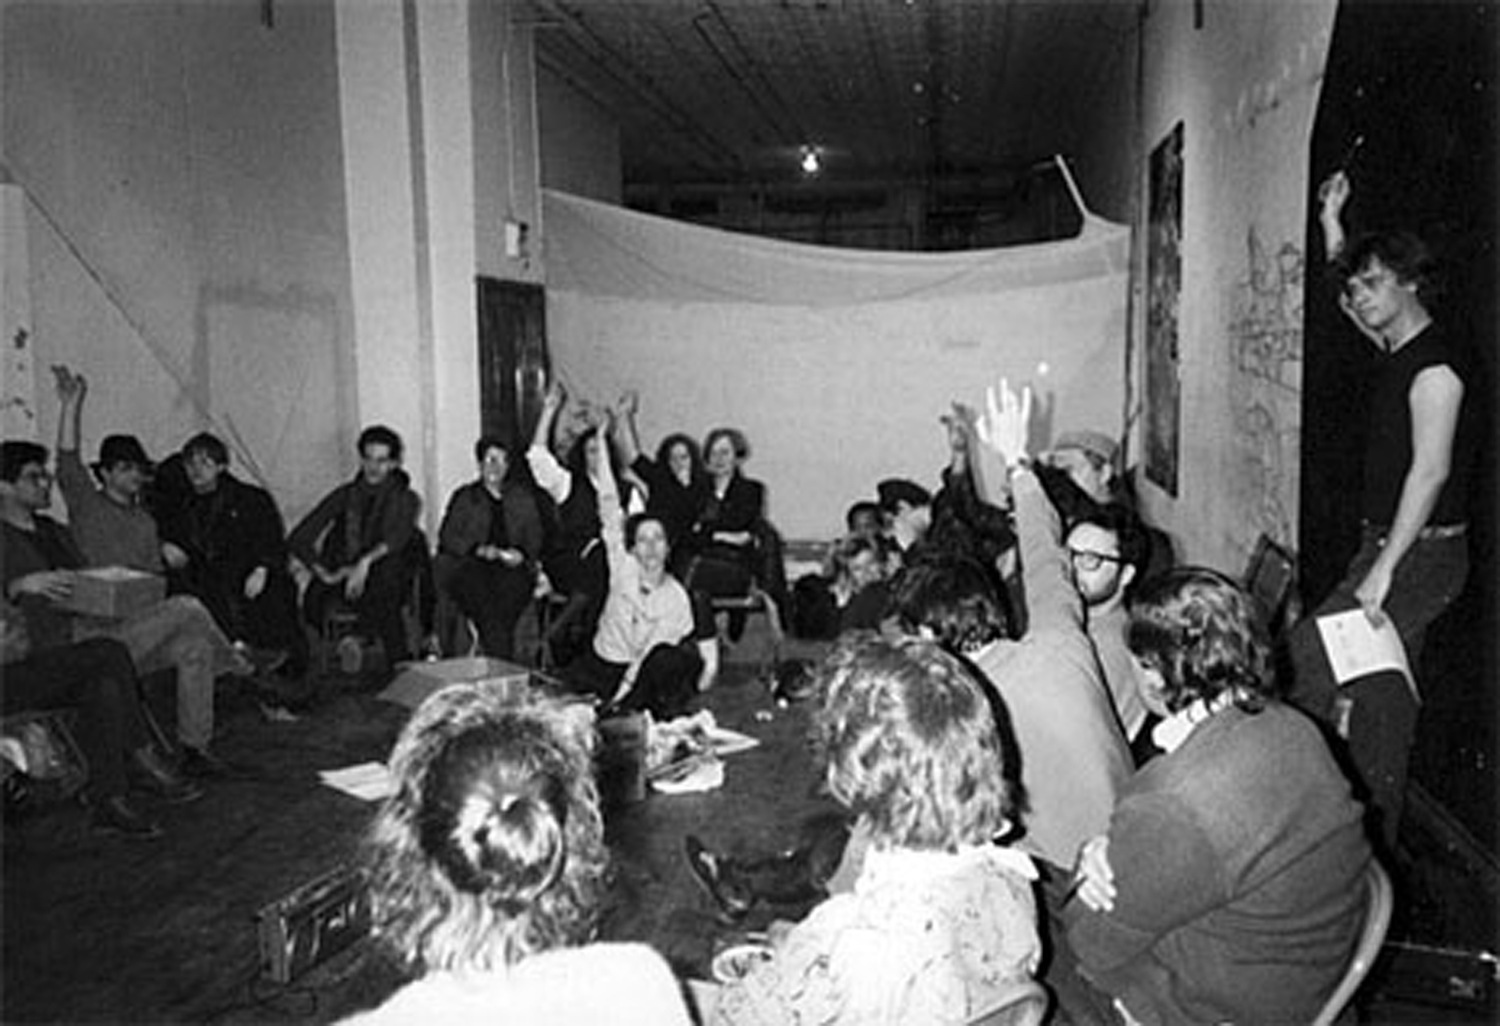 Colab Meeting at Peter Fend's Broadway Loft, 1983. Photo by Albert DiMartino